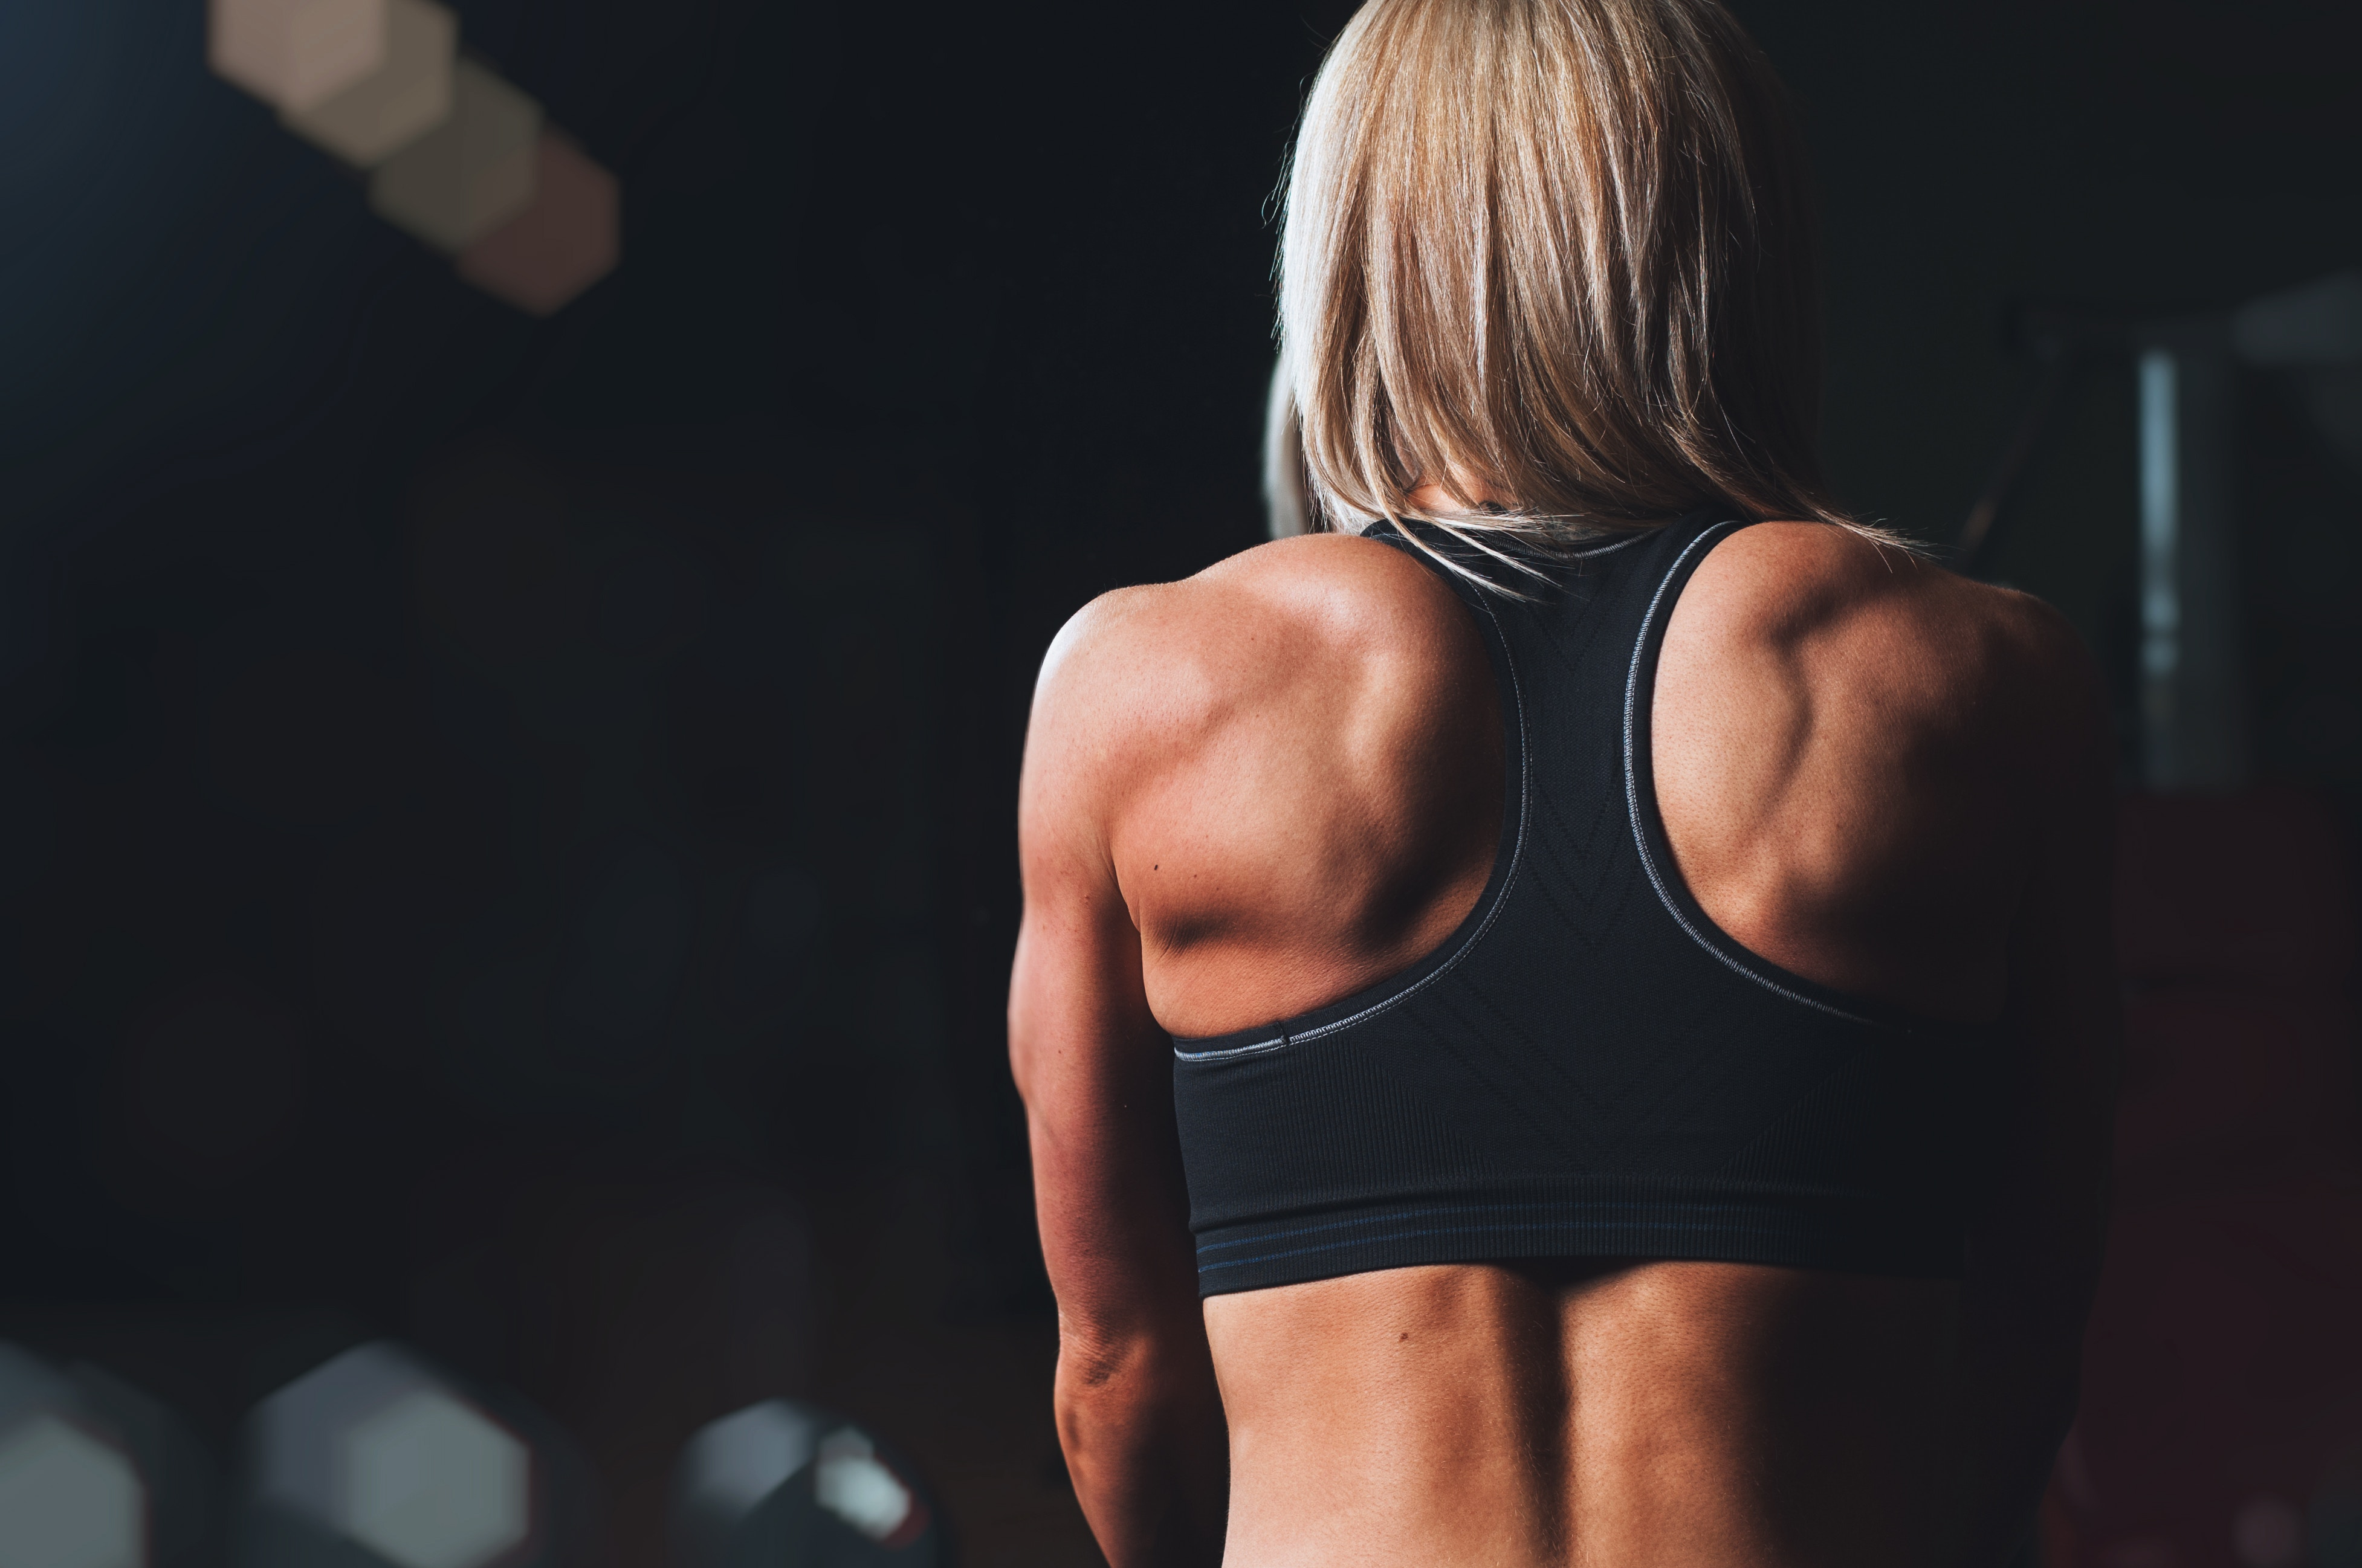 Female bodybuilder muscle workout training